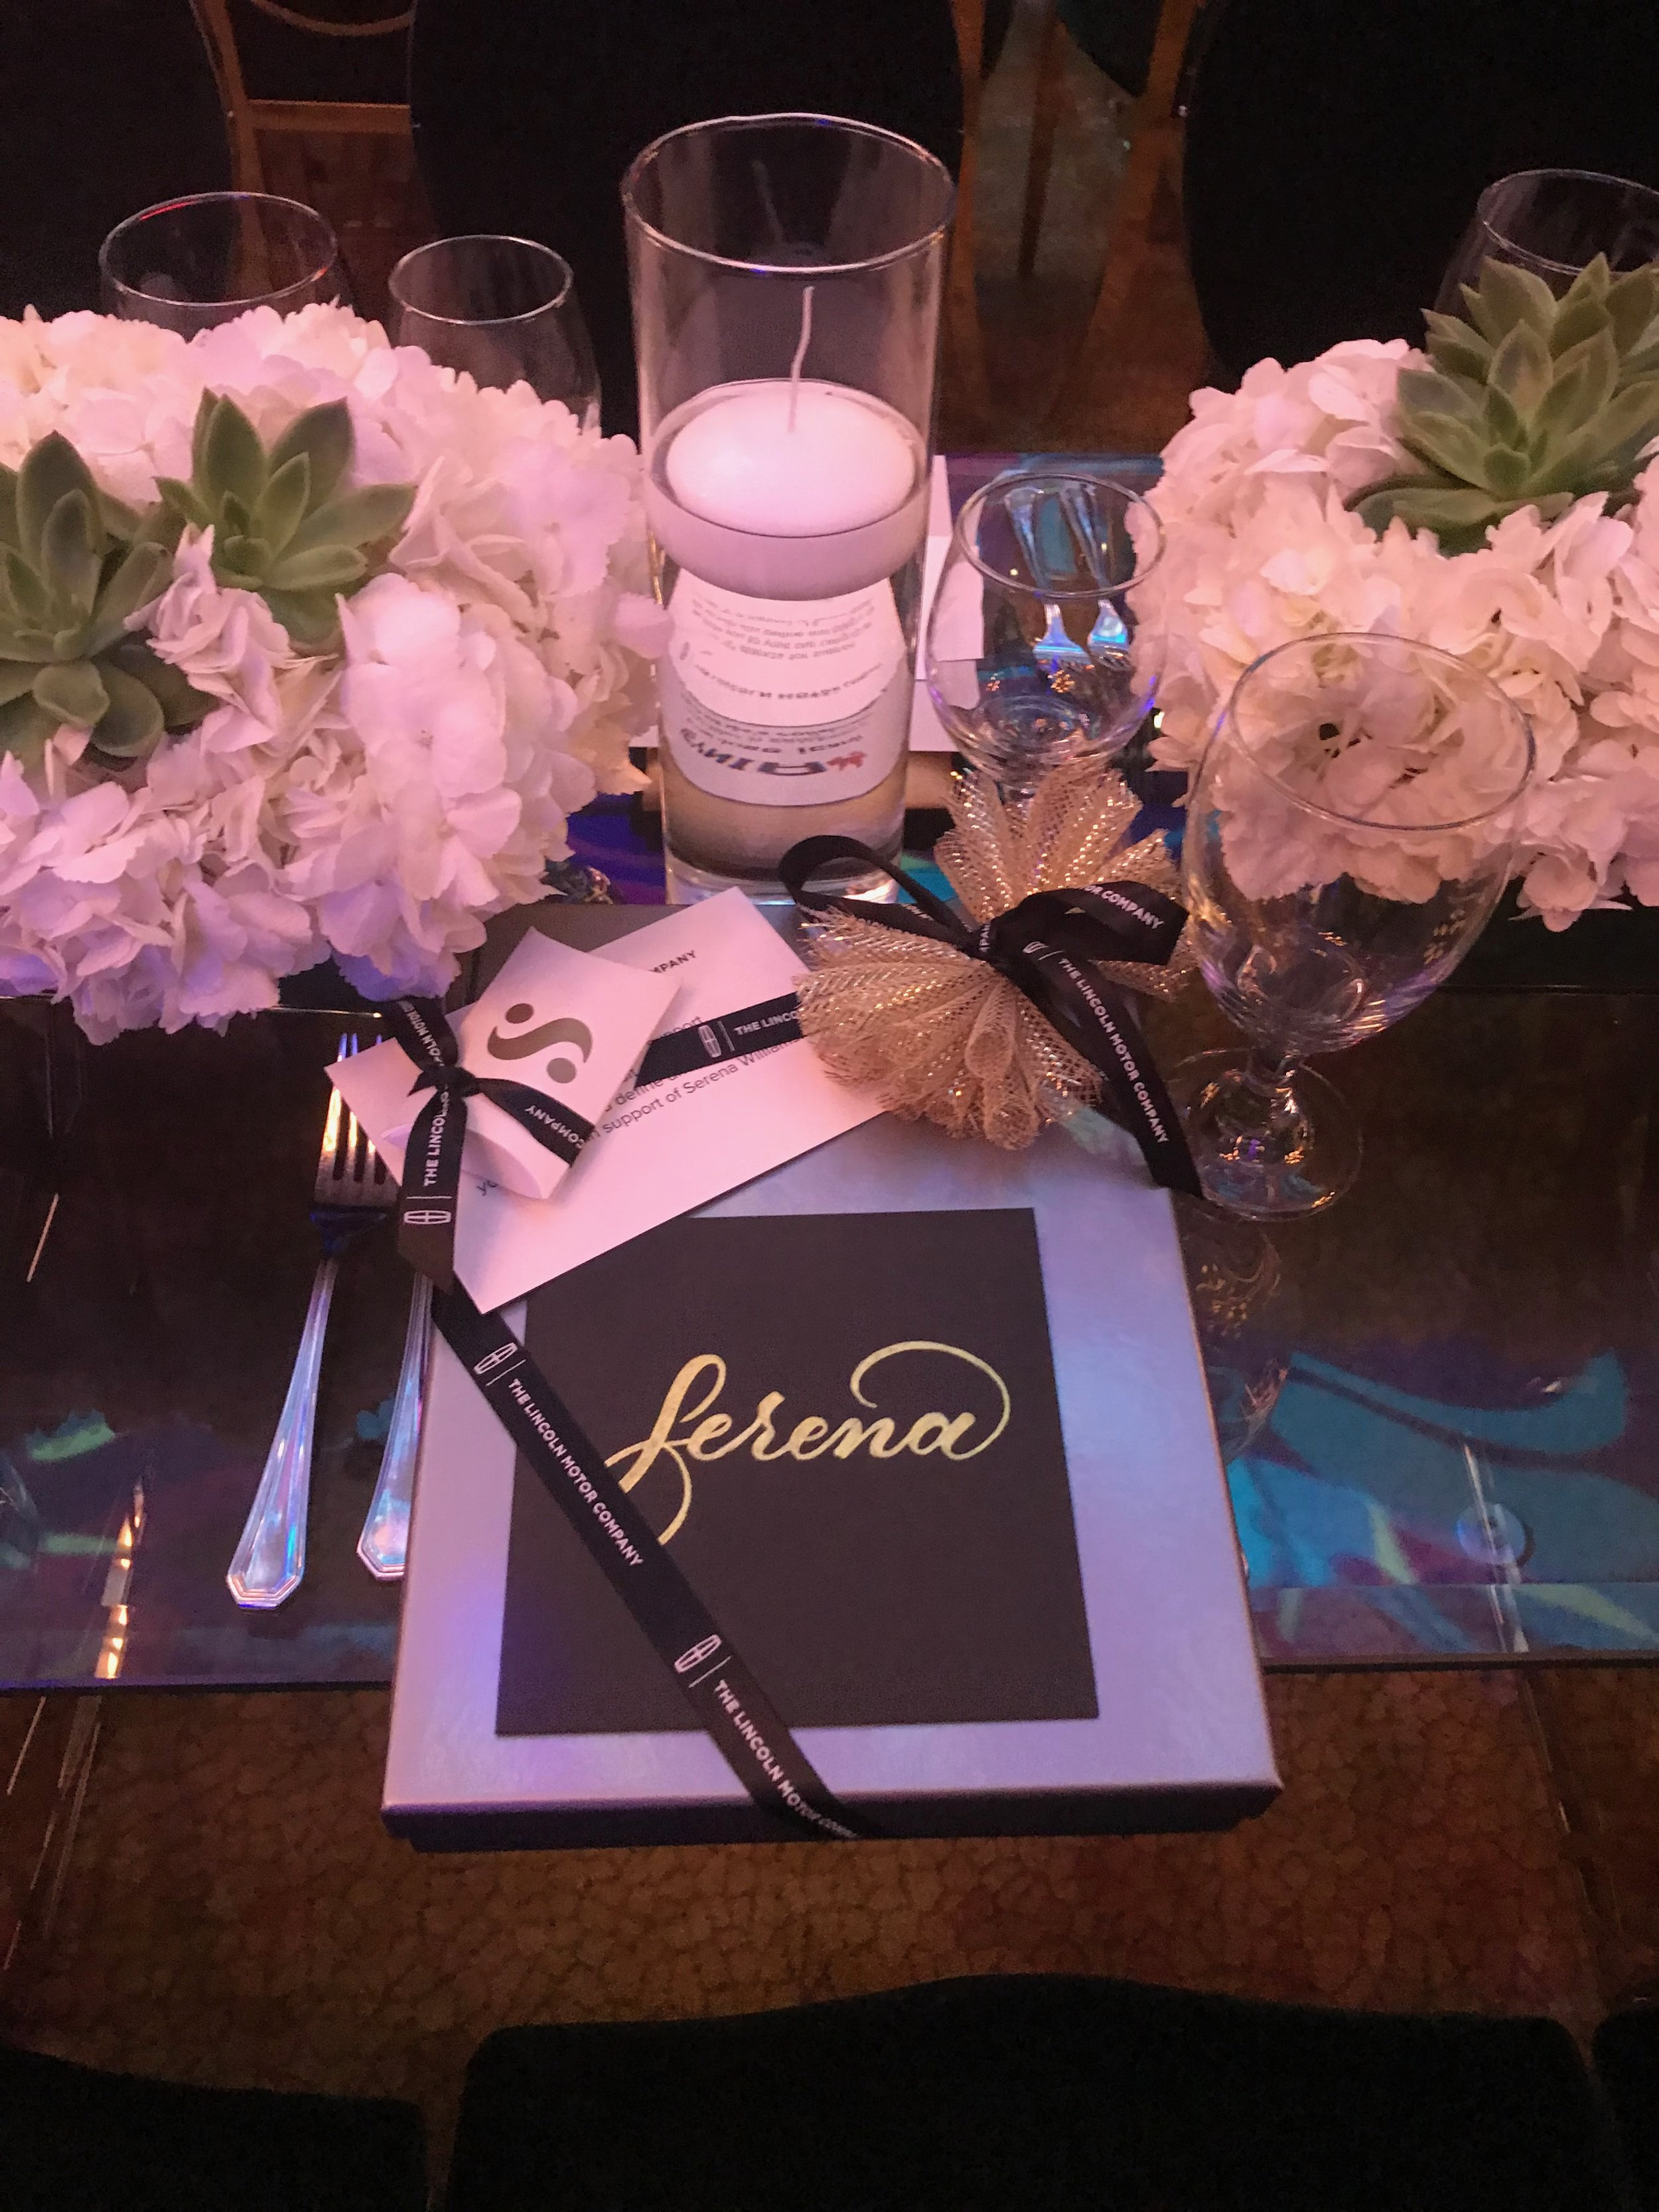 CUSTOM GIFTING  With additional services from products to packaging to delivery, we provide premium touches specific to your event.